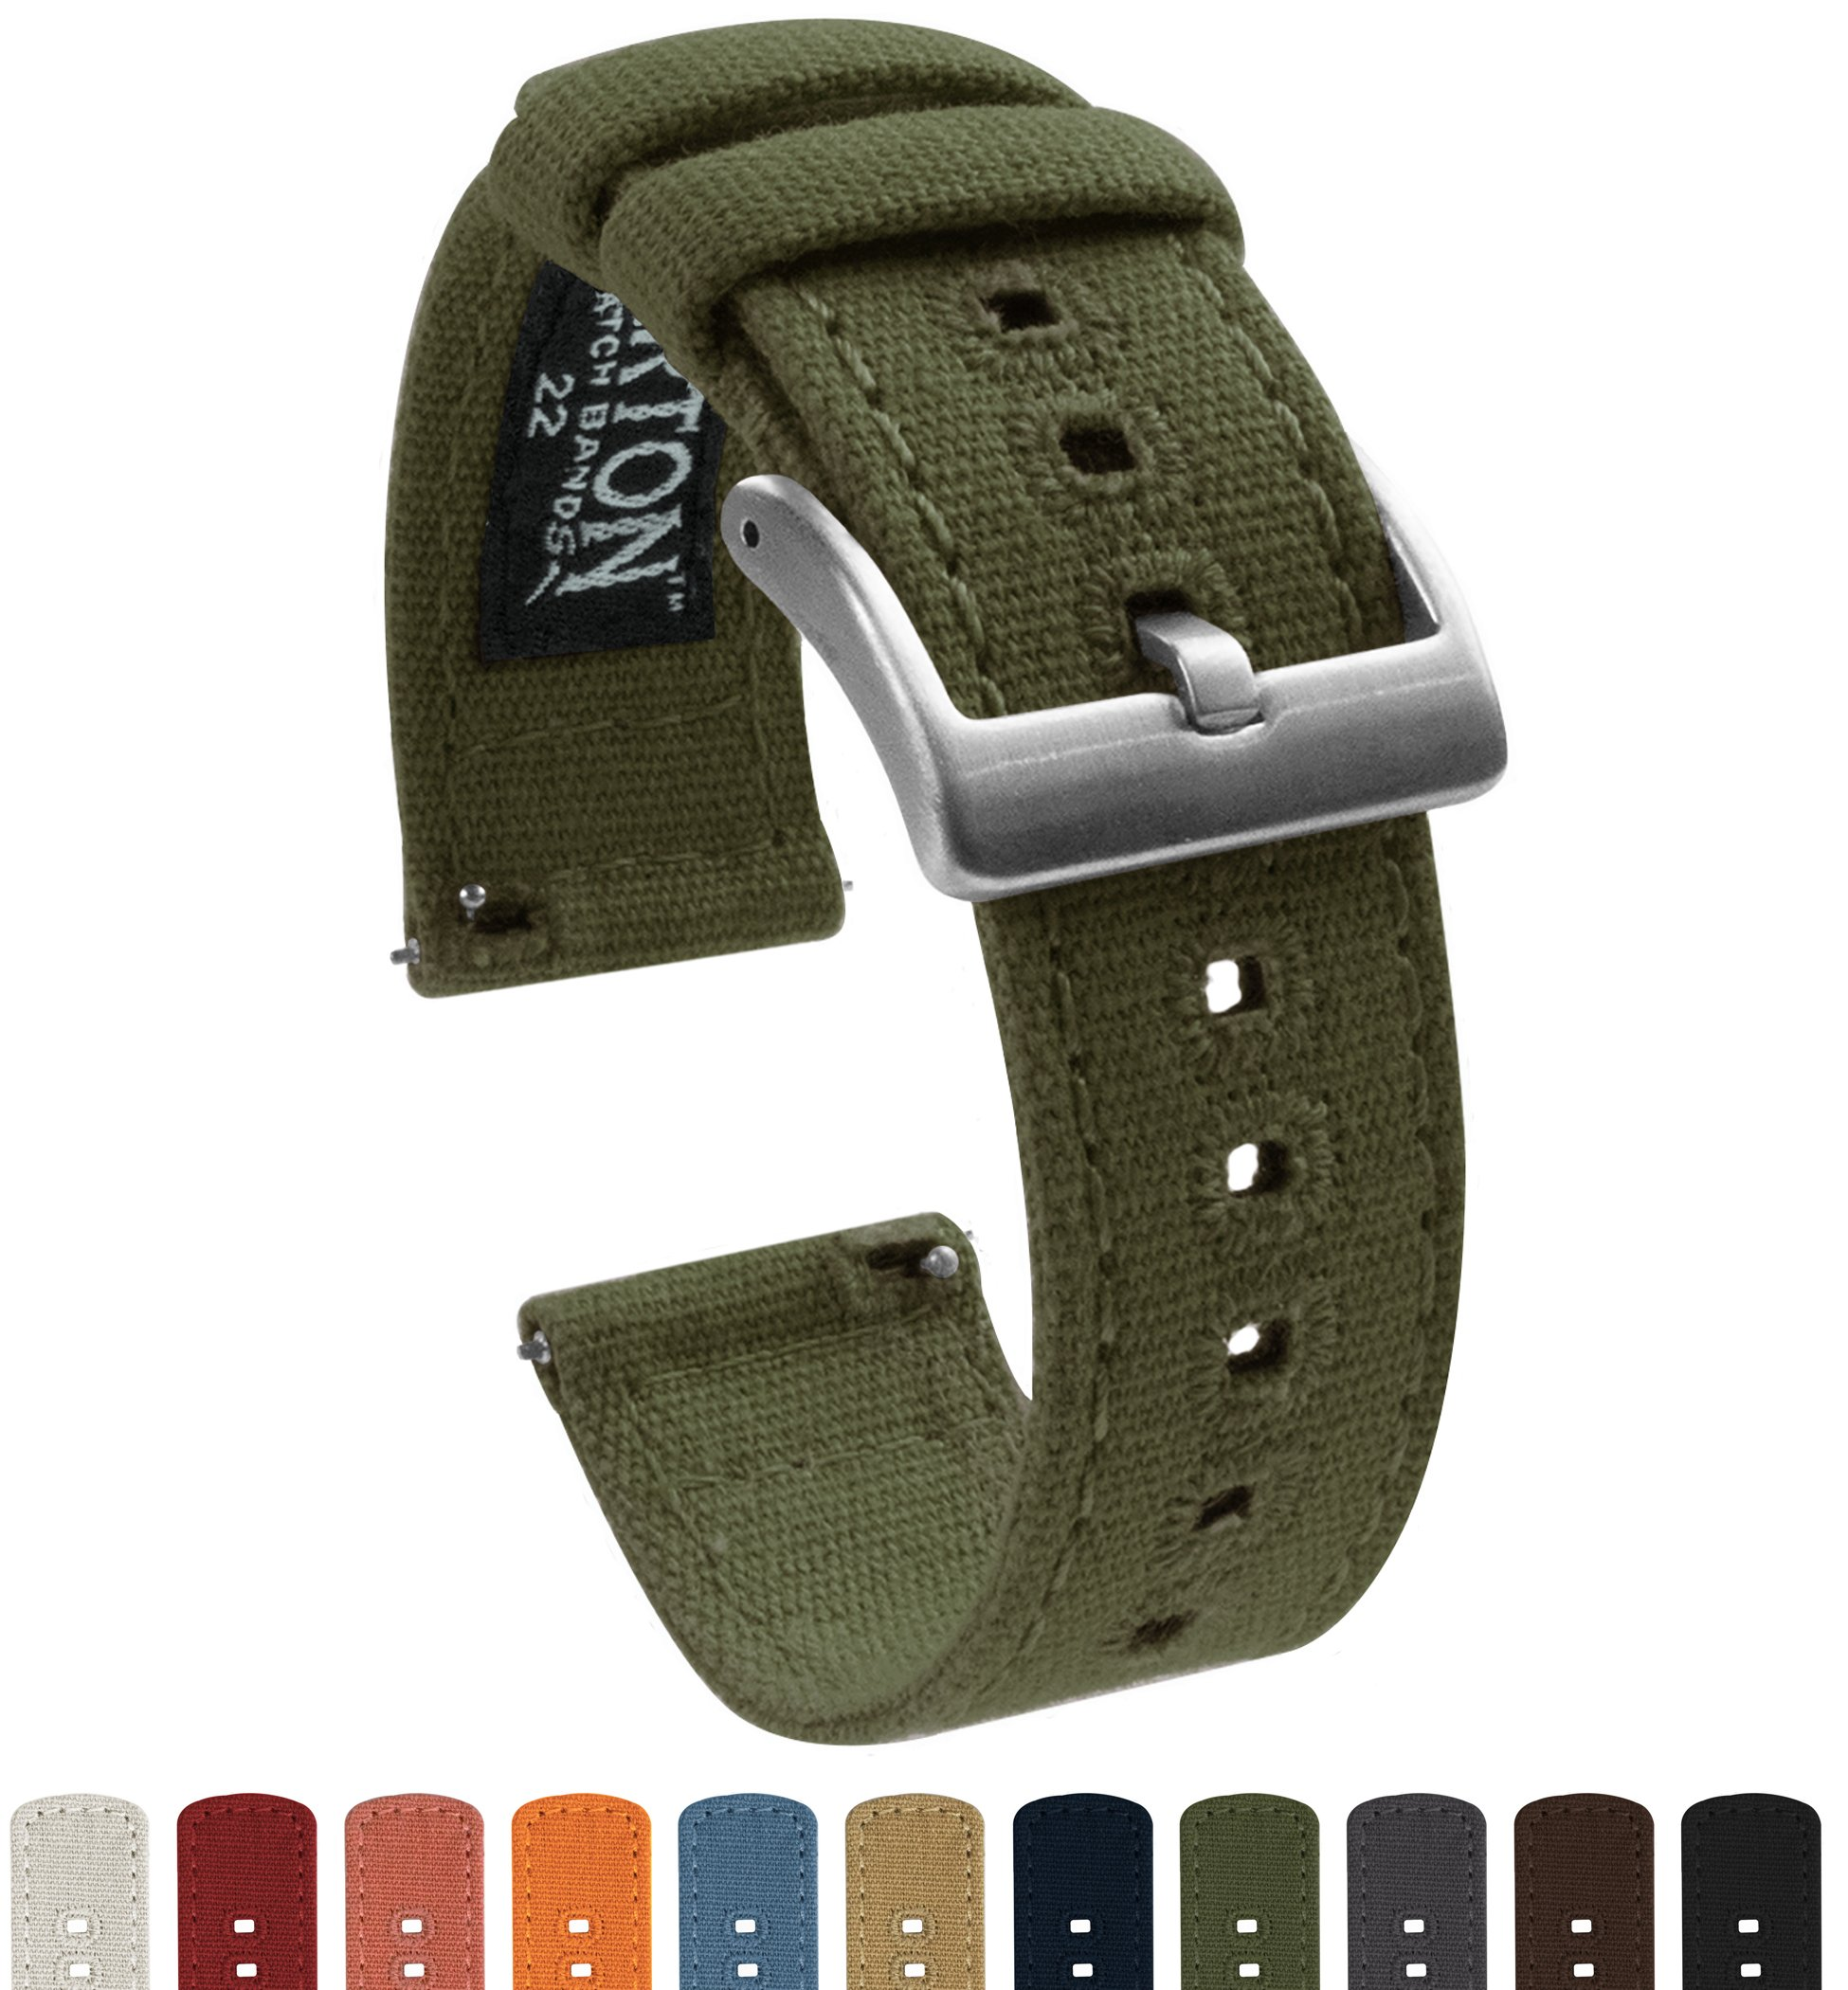 BARTON Canvas Quick Release Watch Band Straps - Choose Color & Width - 18mm, 20mm, 22mm - Army Green 20mm